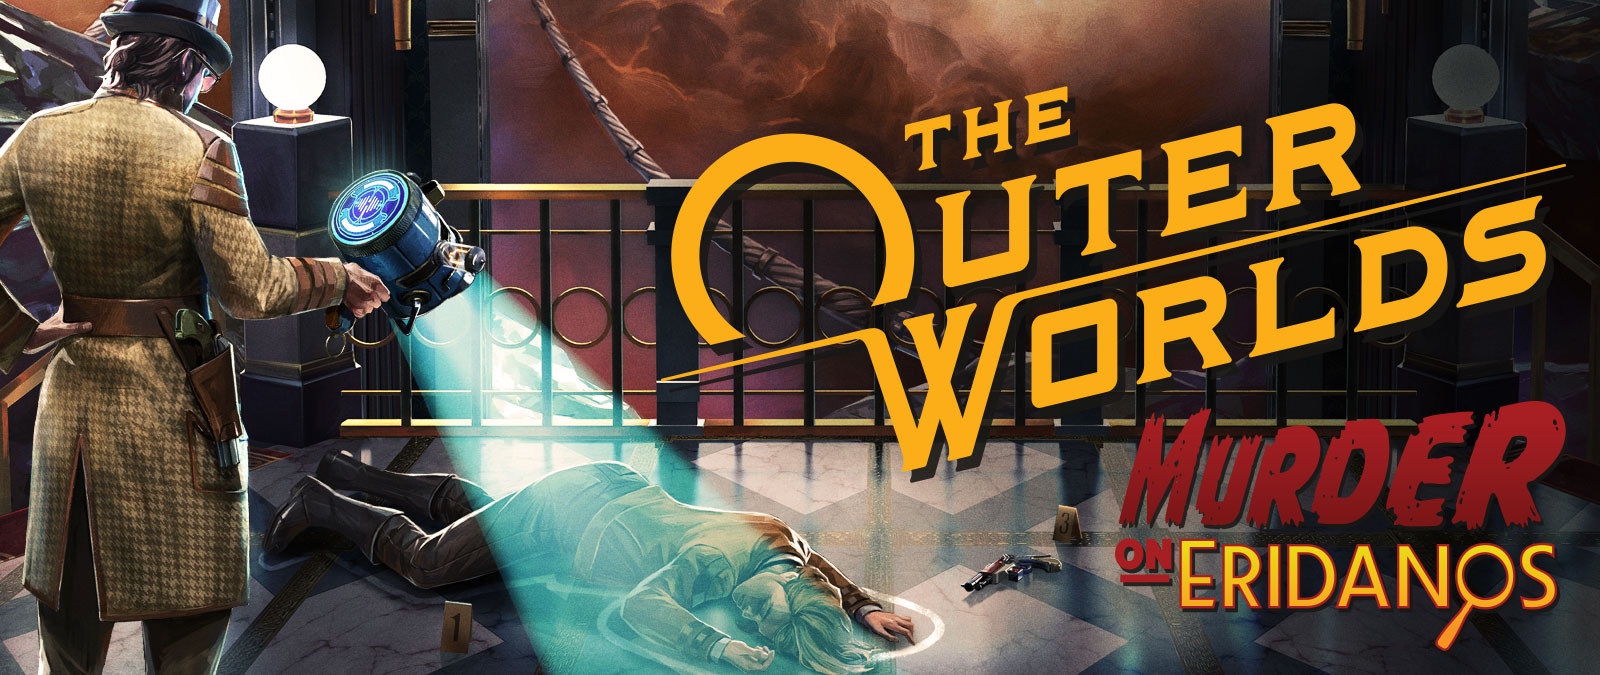 The Outer Worlds, Murder on Eridanos, A detective investigates a dead body on the floor next to a gun